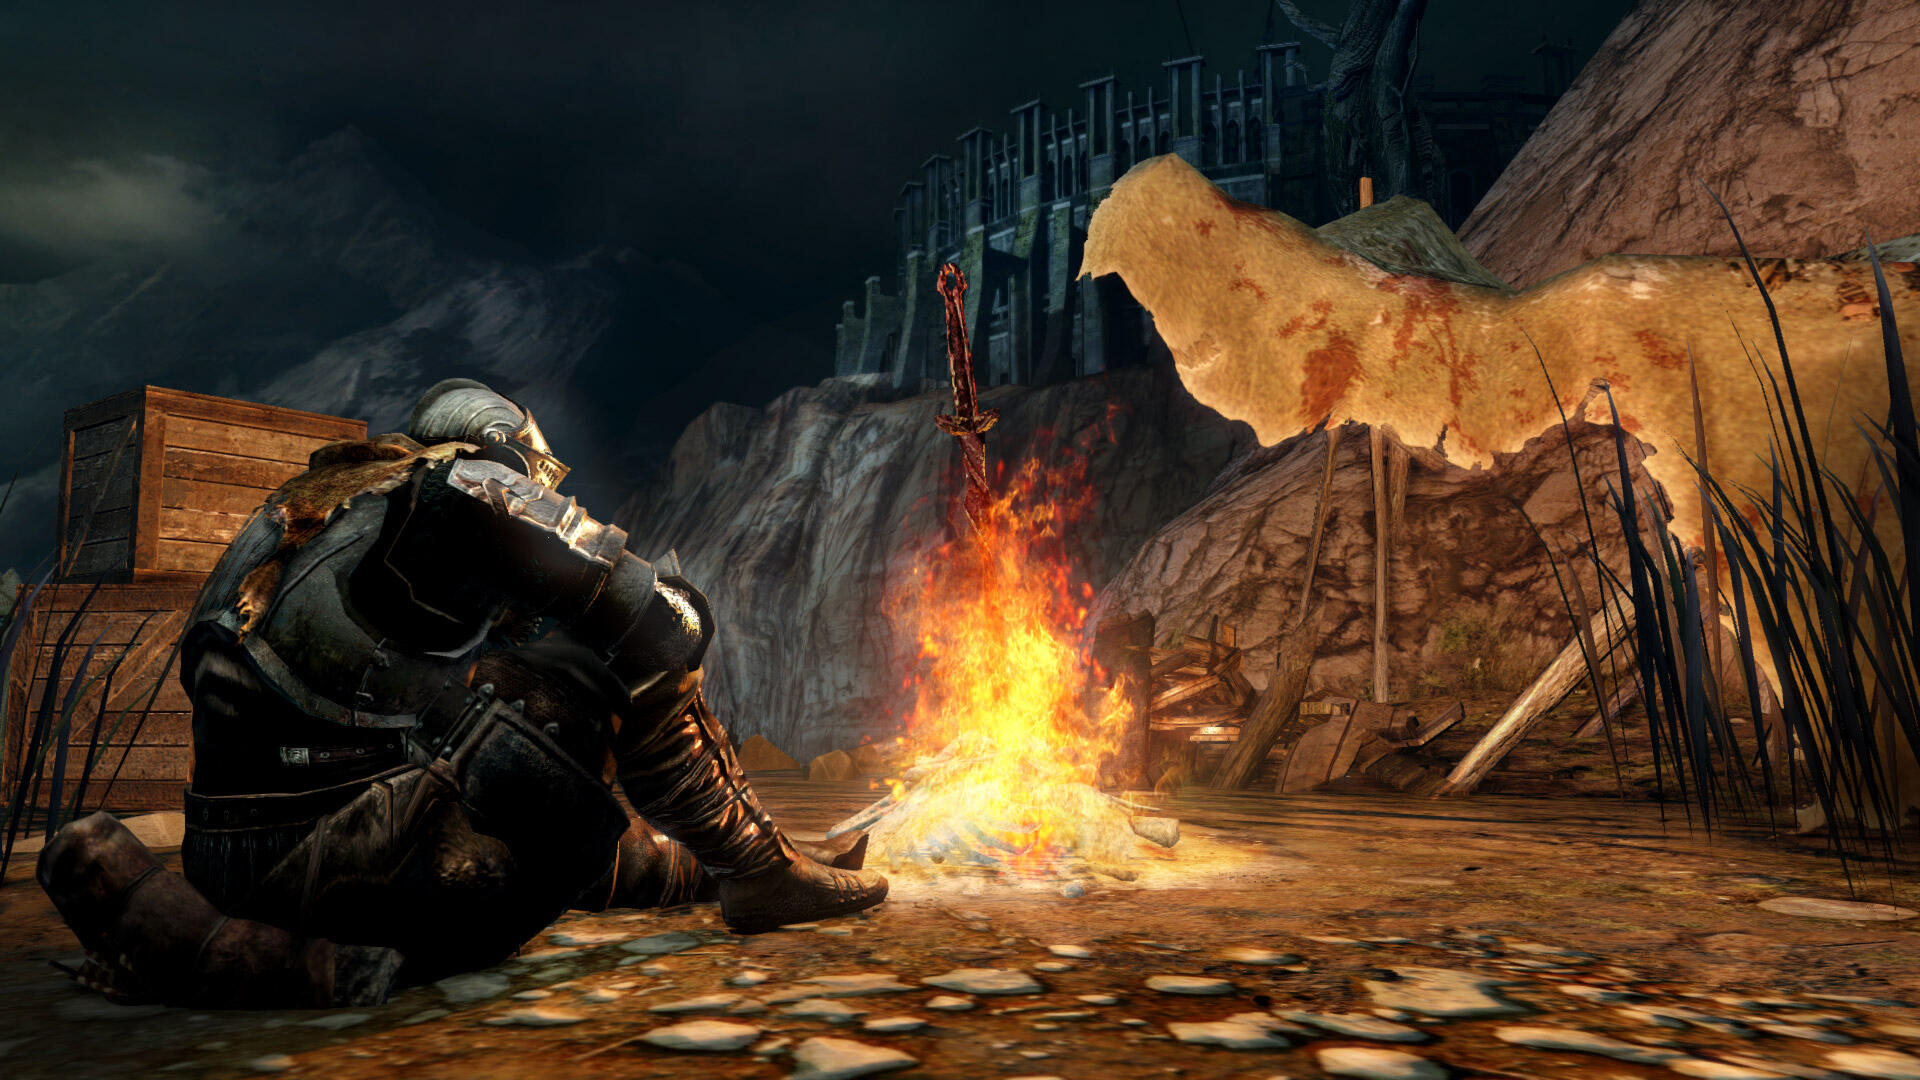 Dark Souls Trilogy Box Set Also Announced for PS4, But It's Crazy Expensive